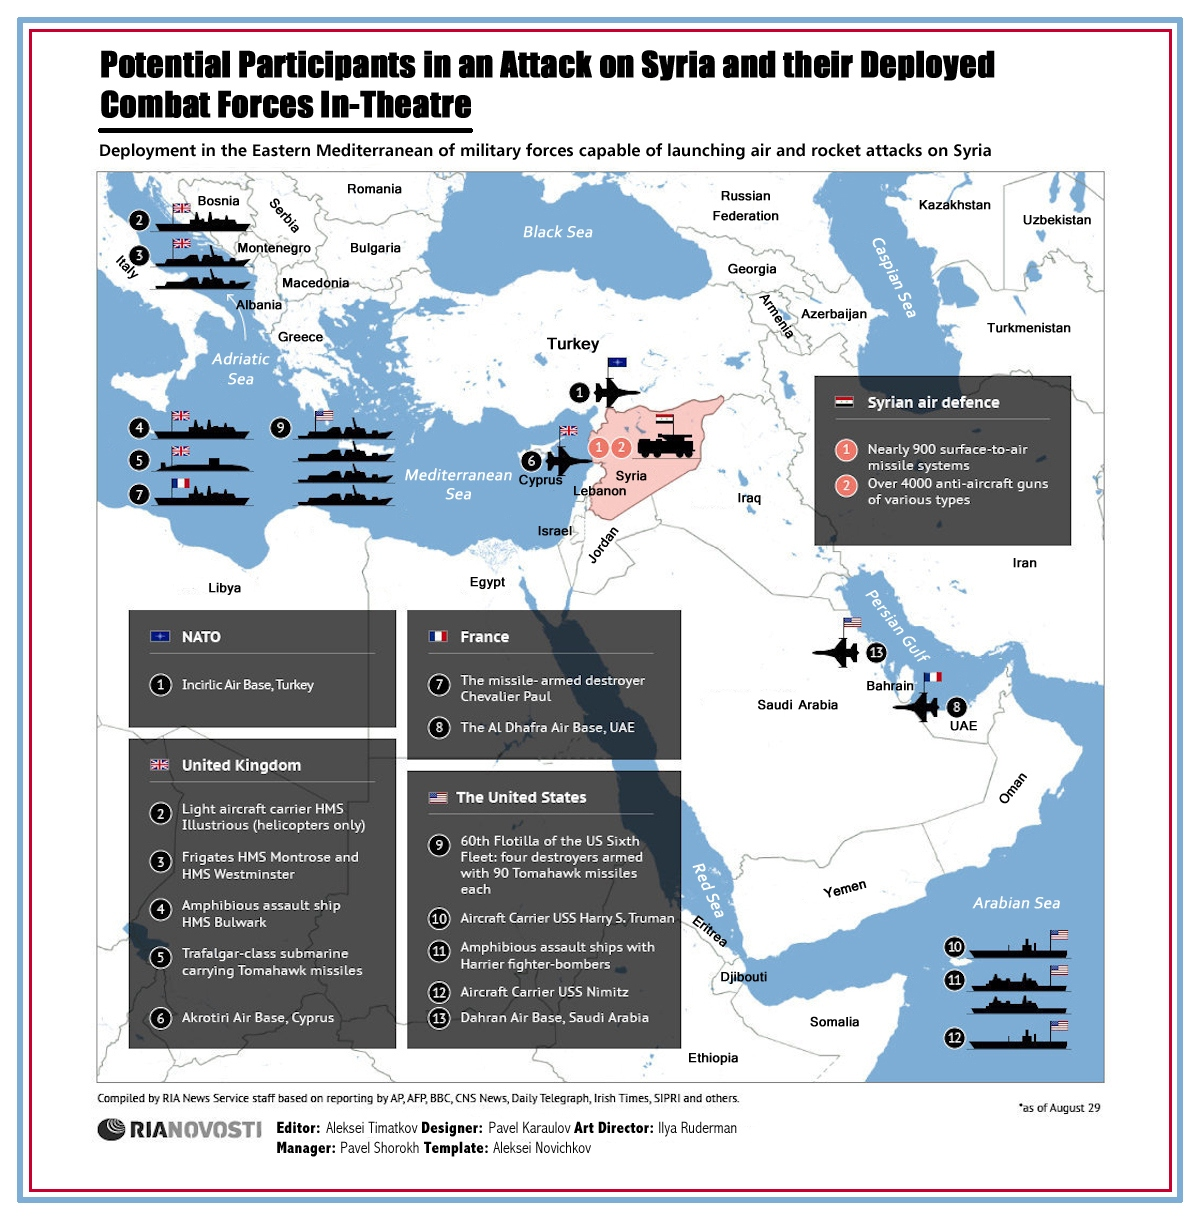 00 RIA-Novosti Infographics. Potential Participants in an Attack on Syria and their Deployed Combat Forces In-Theatre. 2013